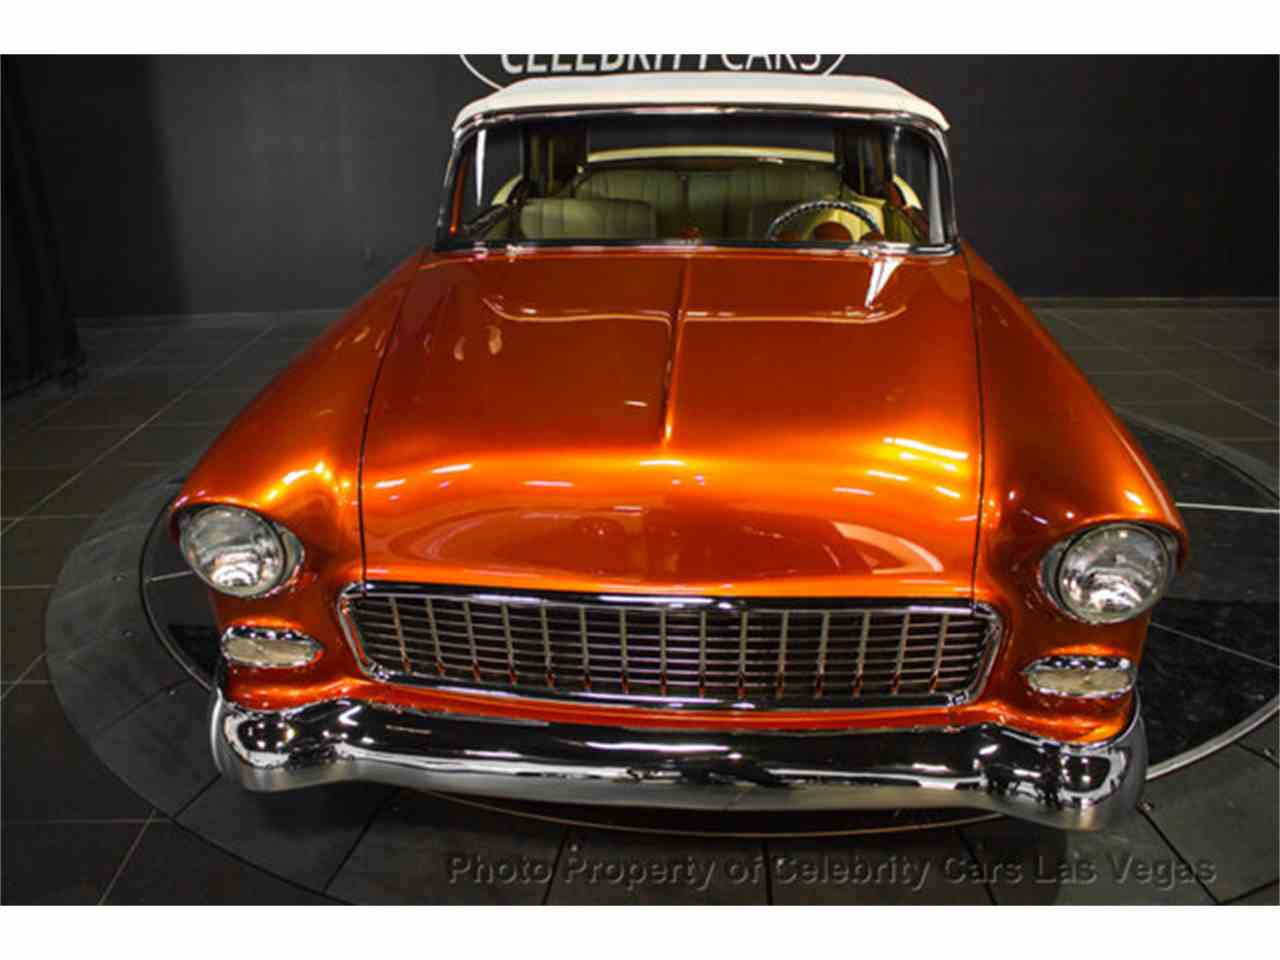 Large Picture of Classic 1955 Chevrolet Bel Air - $159,000.00 Offered by Celebrity Cars Las Vegas - AMXB